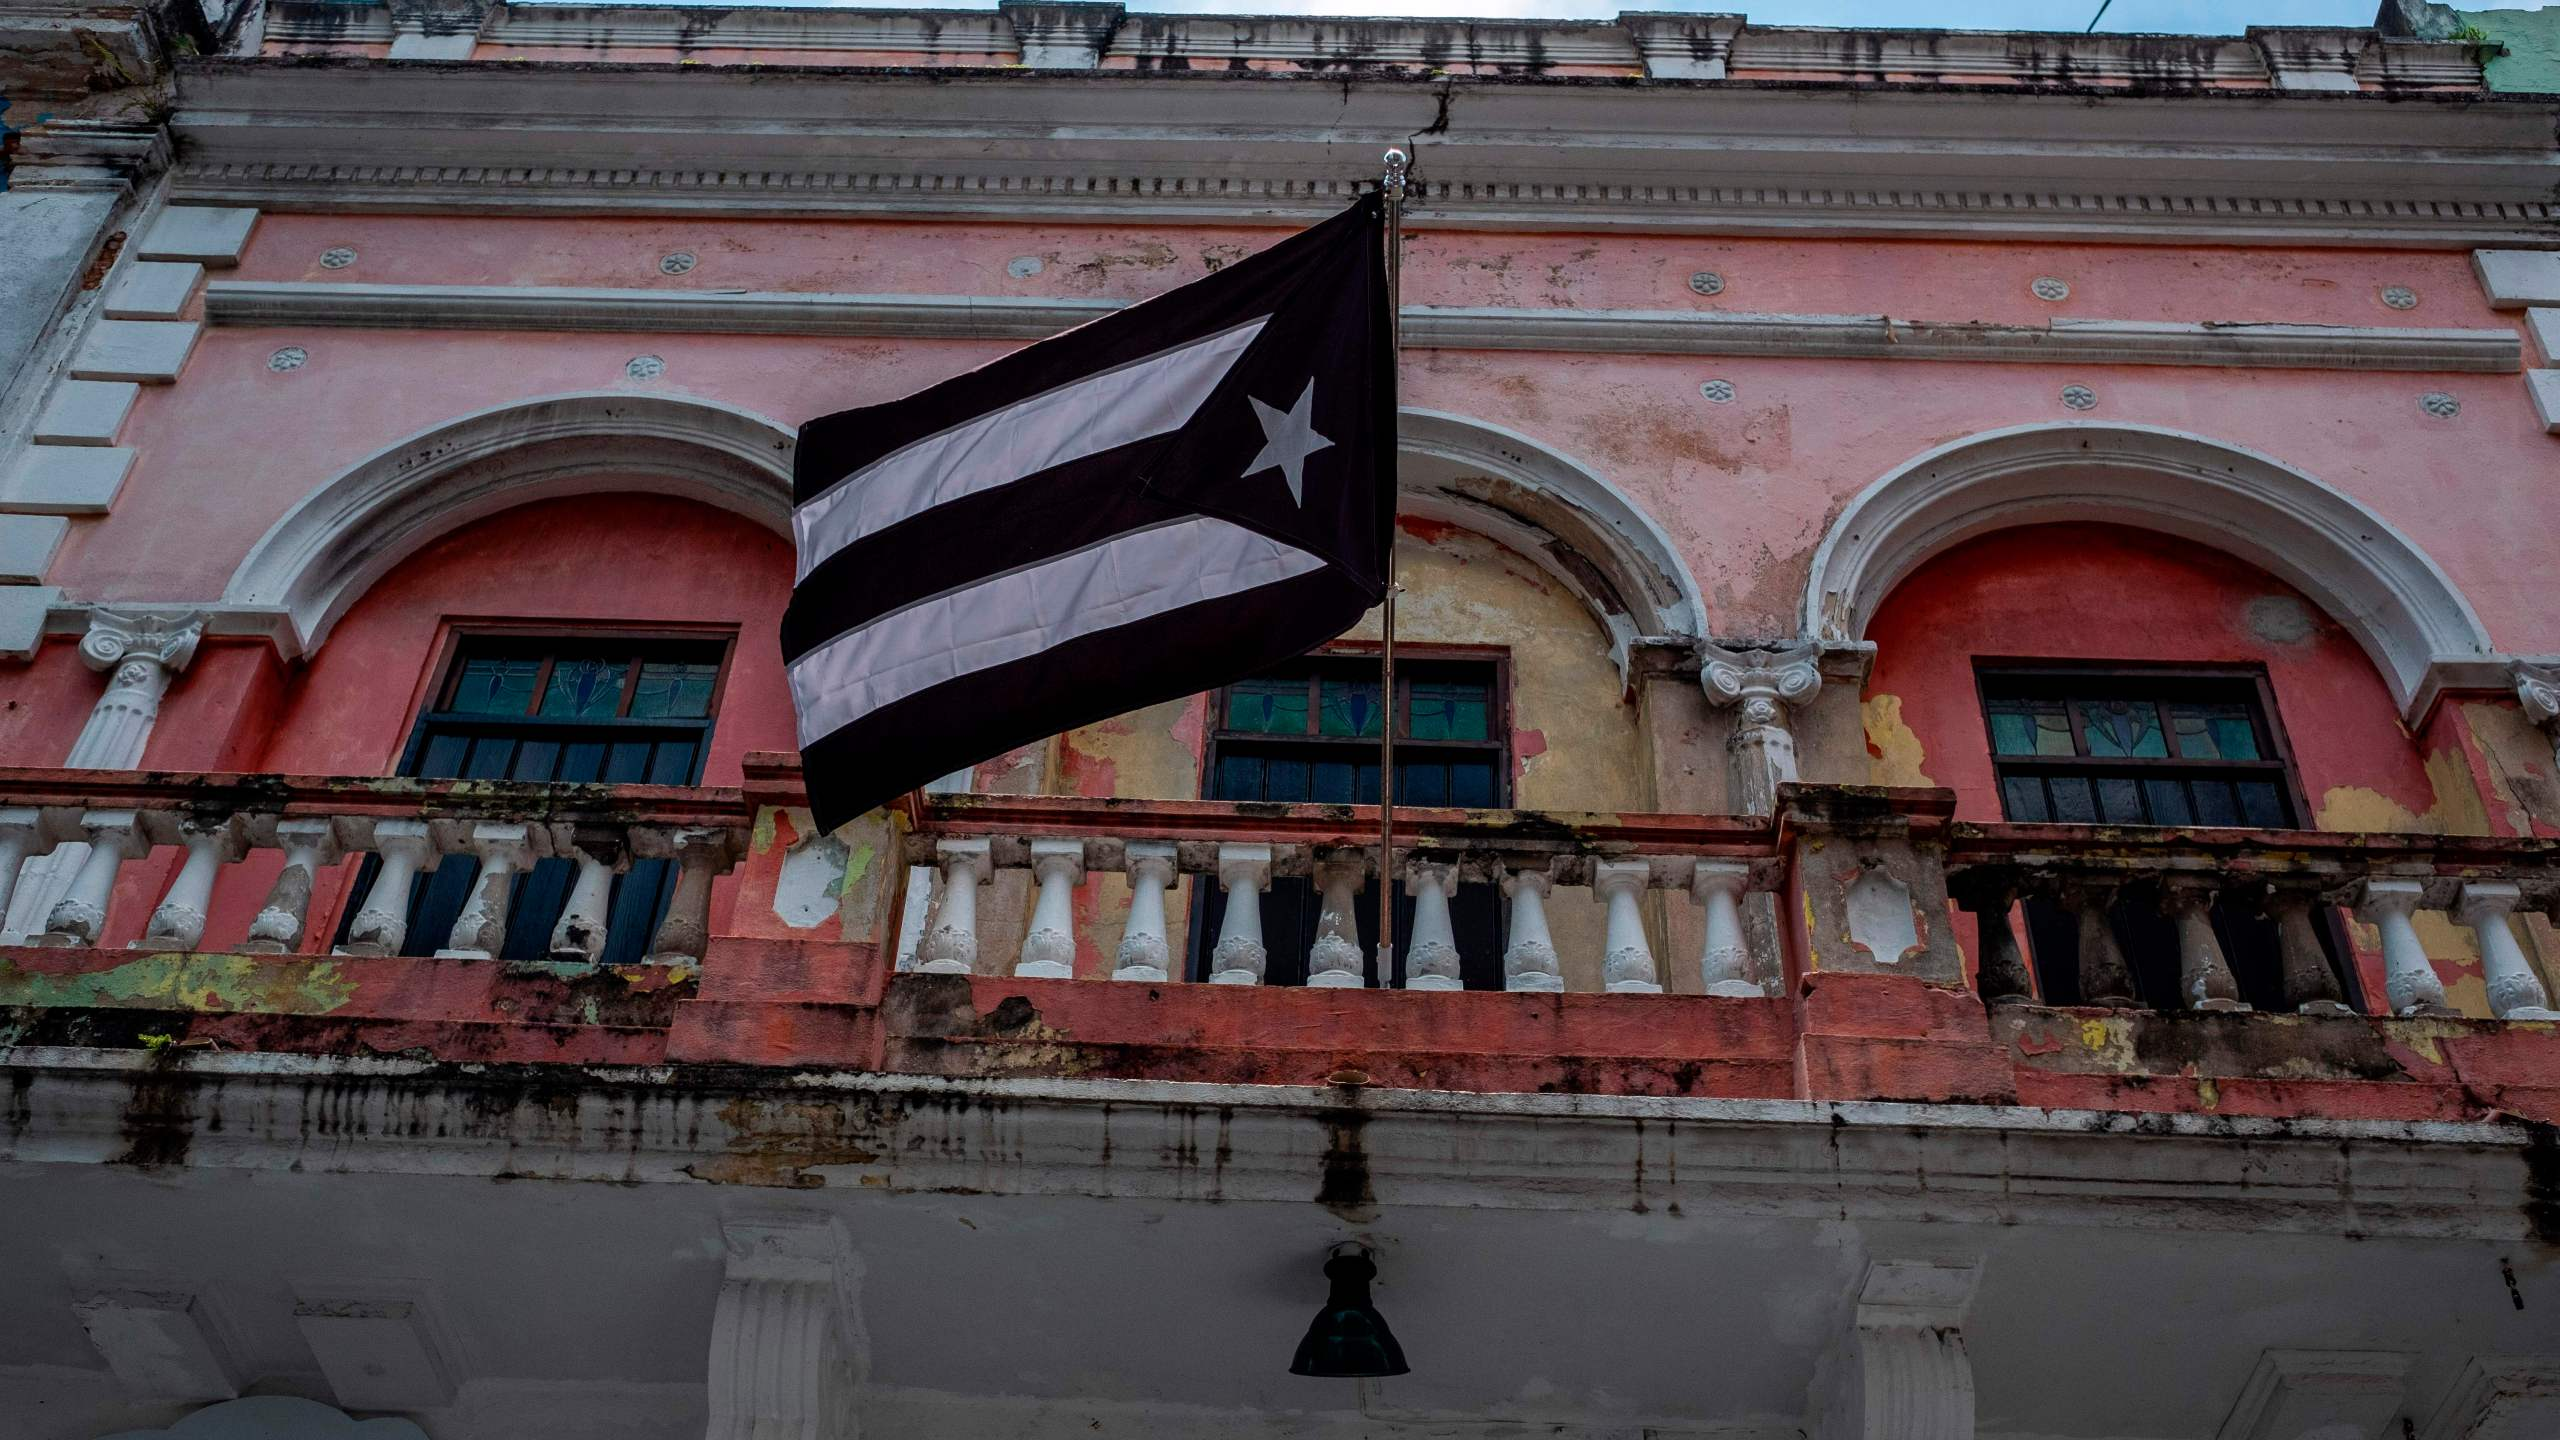 A black and white Puerto Rican National flag hangs from a balcony in Old San Juan, Puerto Rico on April 7, 2020. (RICARDO ARDUENGO/AFP via Getty Images)